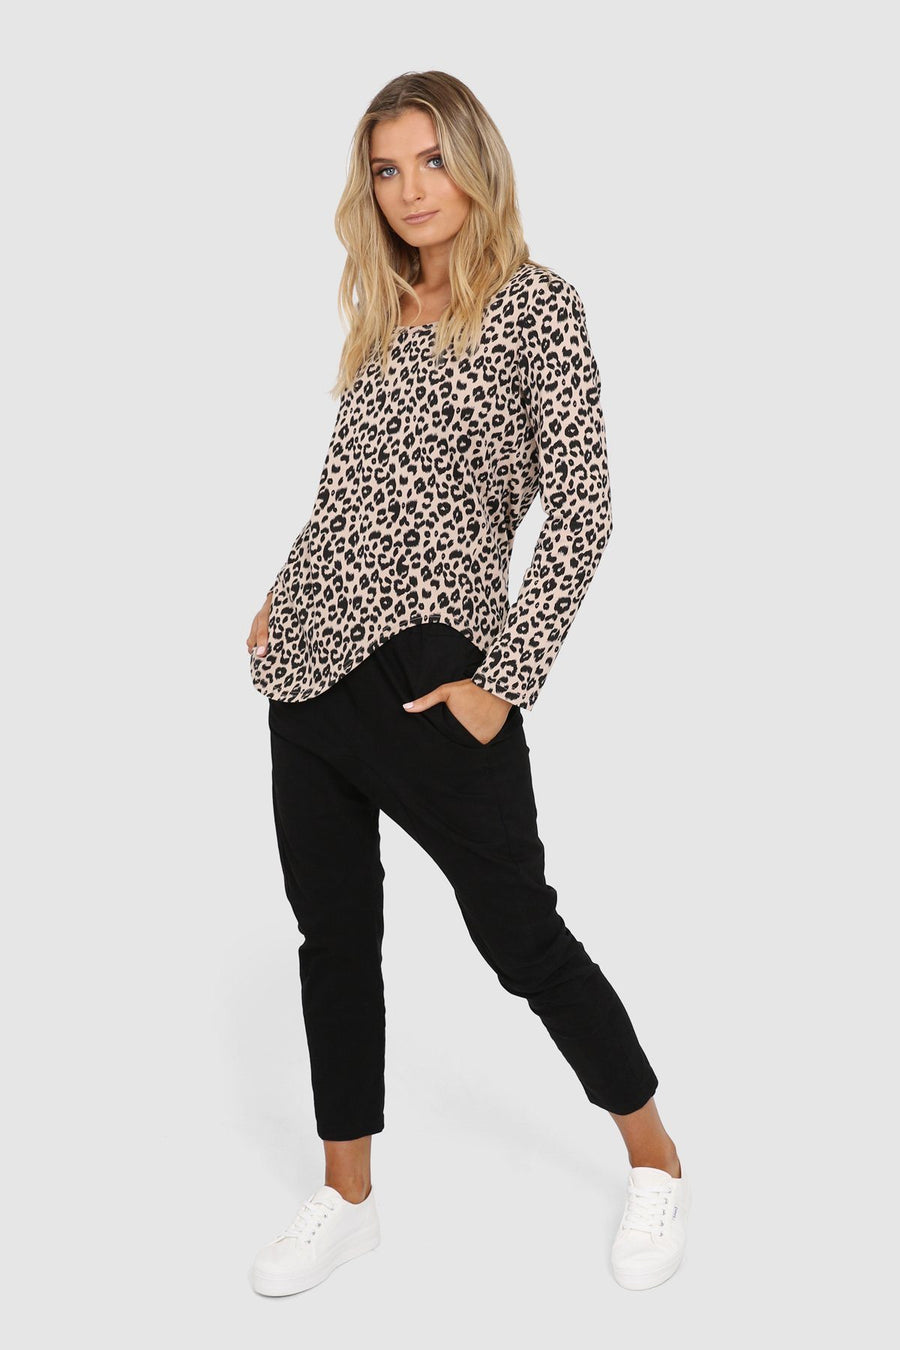 Olivia Top | Nude Leopard Top Gray Label